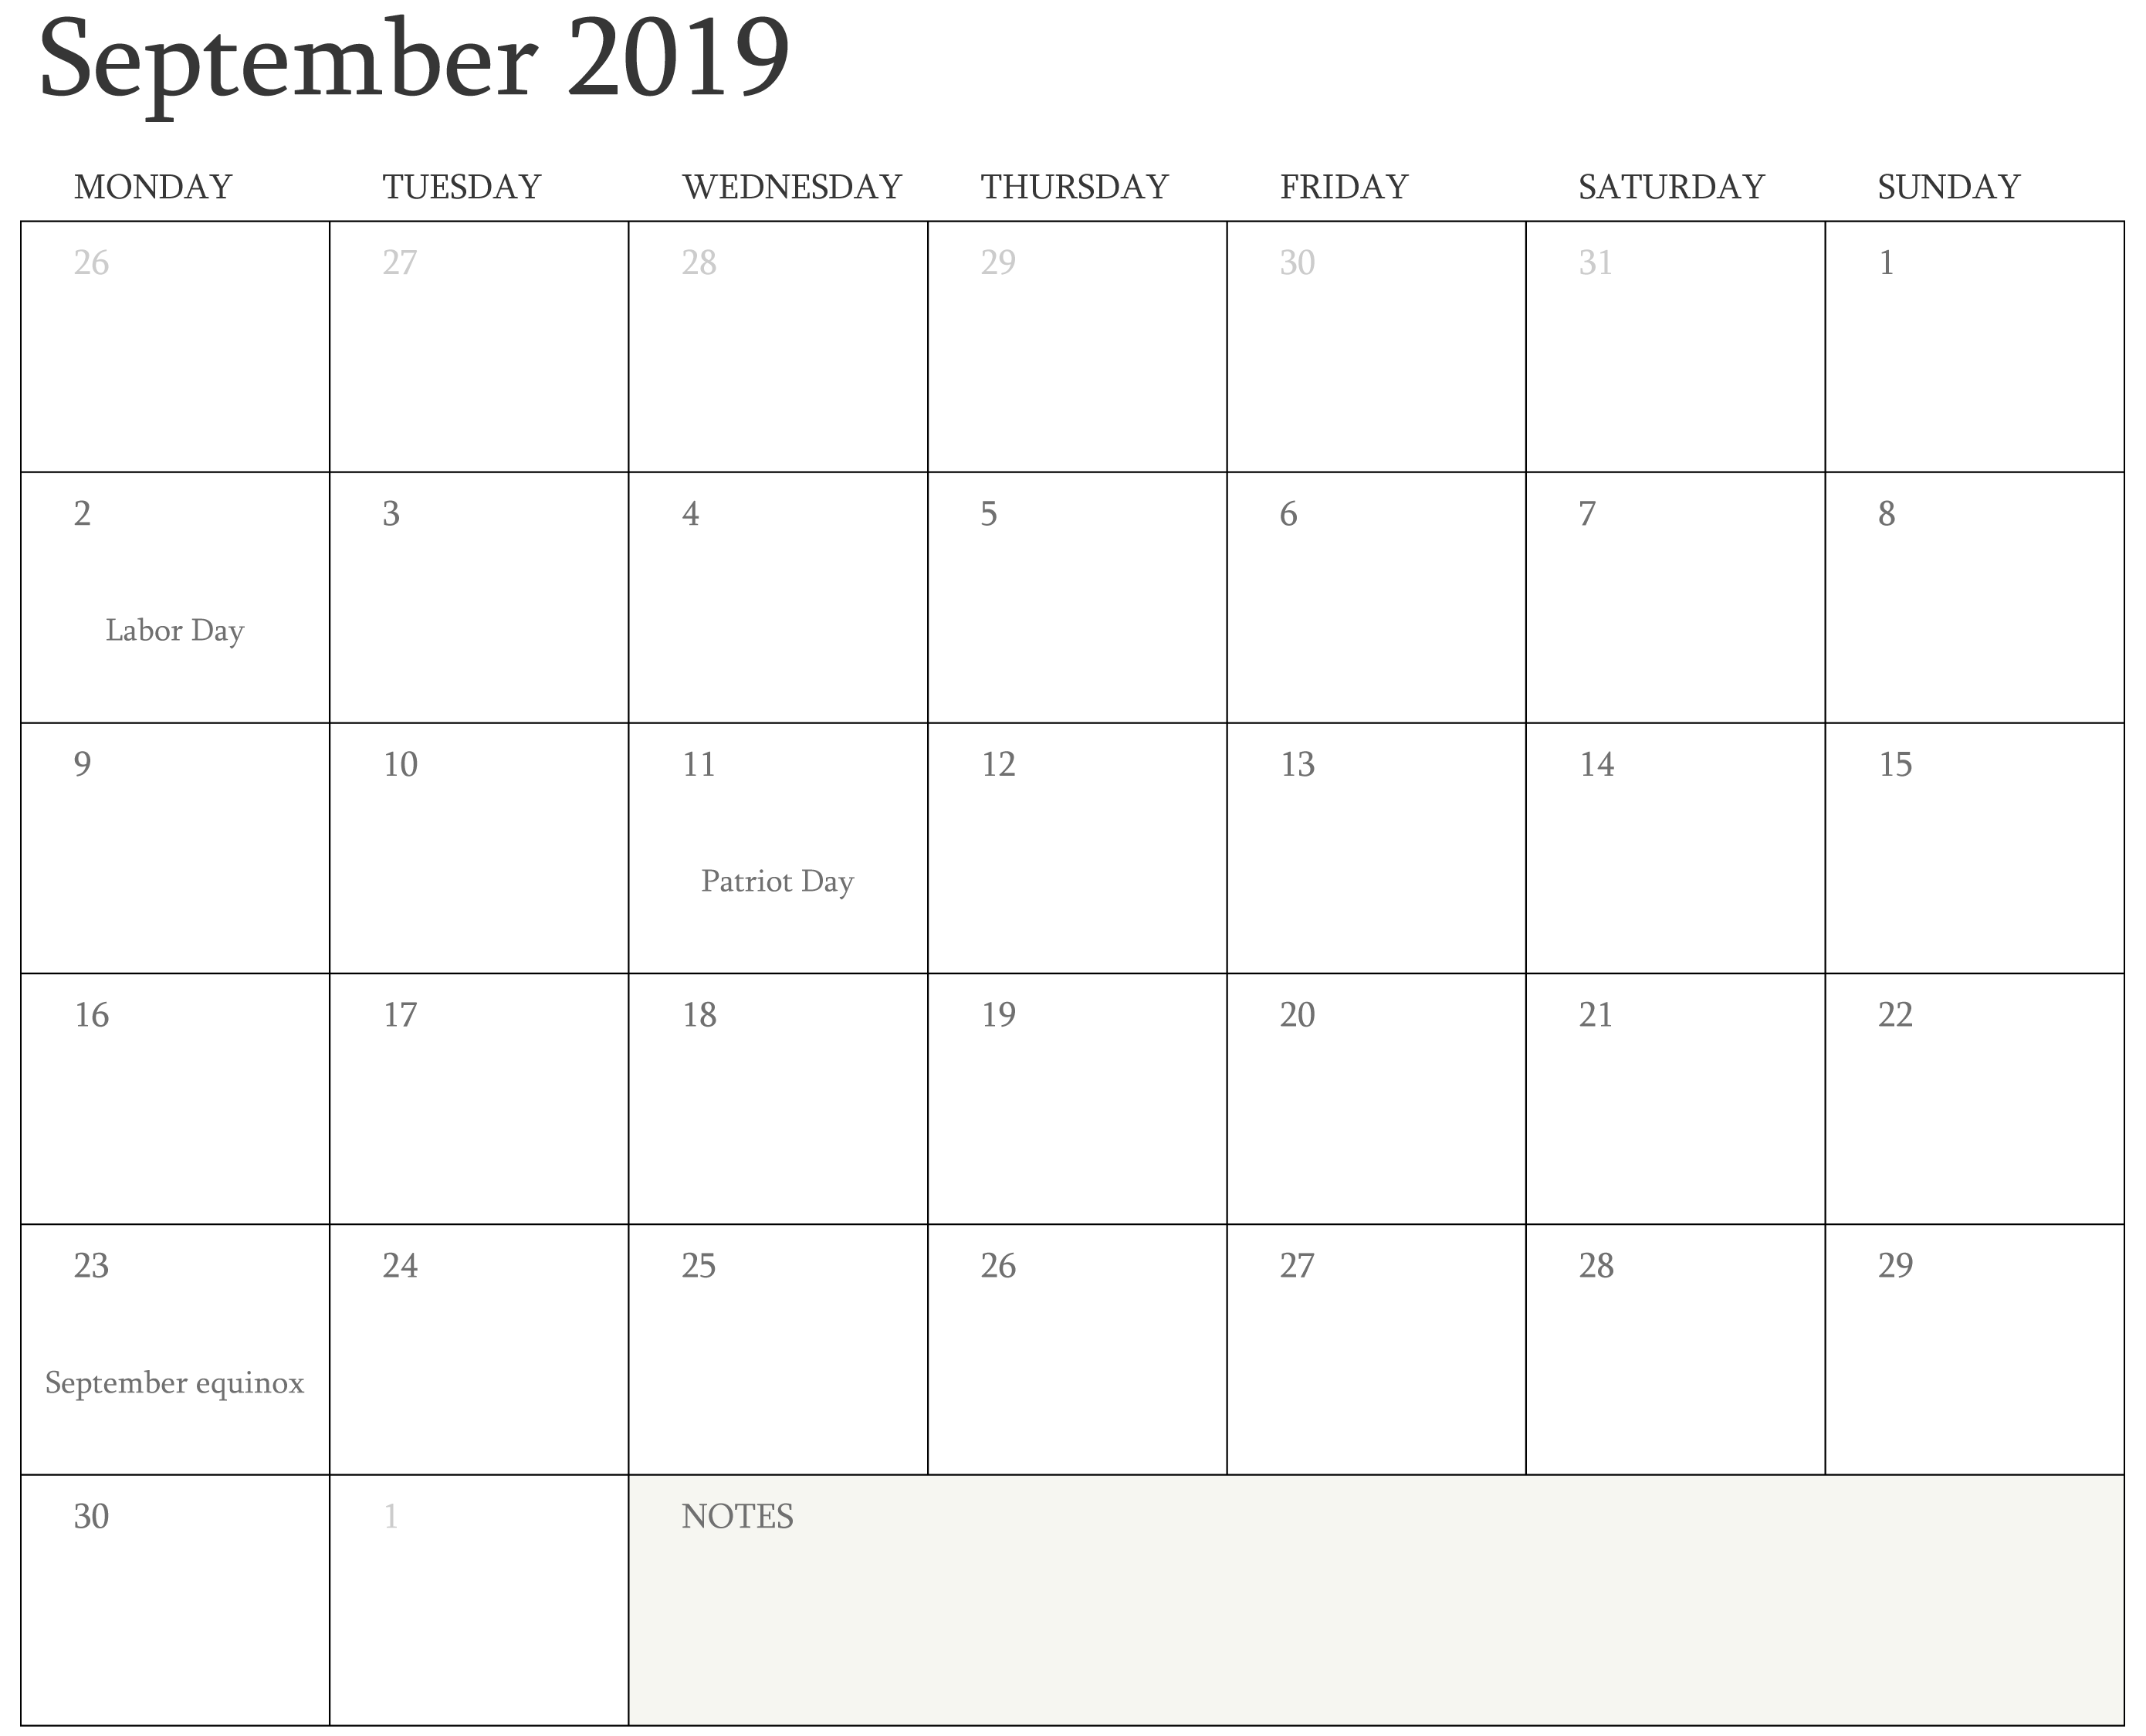 September 2019 Calendar With Holidays with Notes